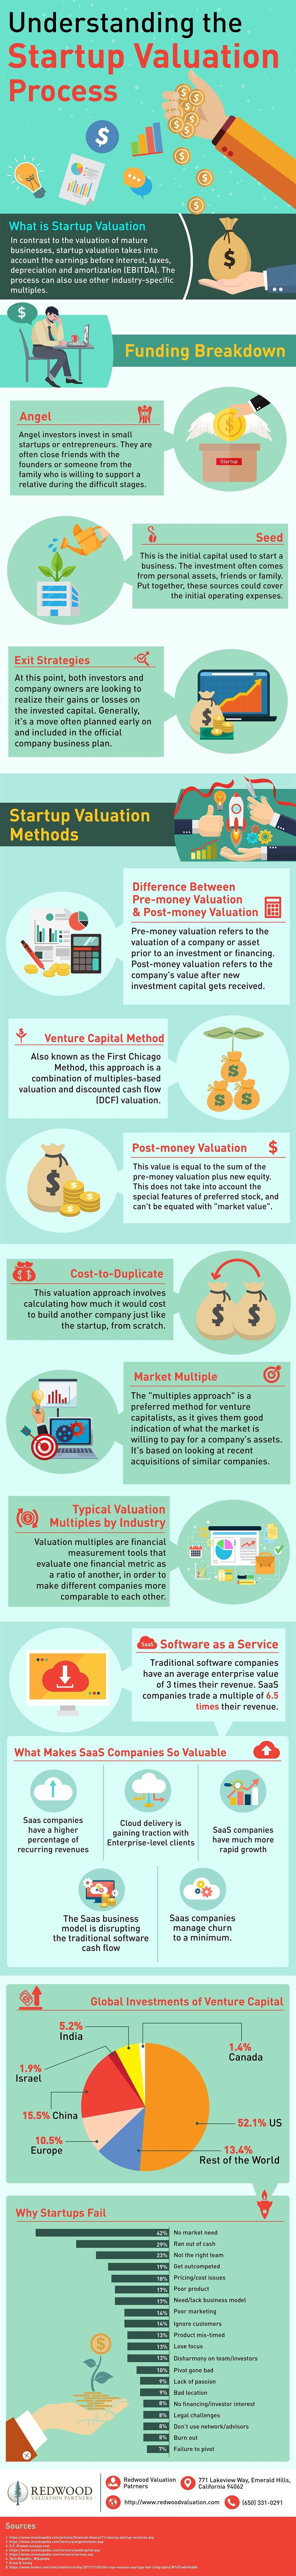 Understanding The Startup Valuation Process